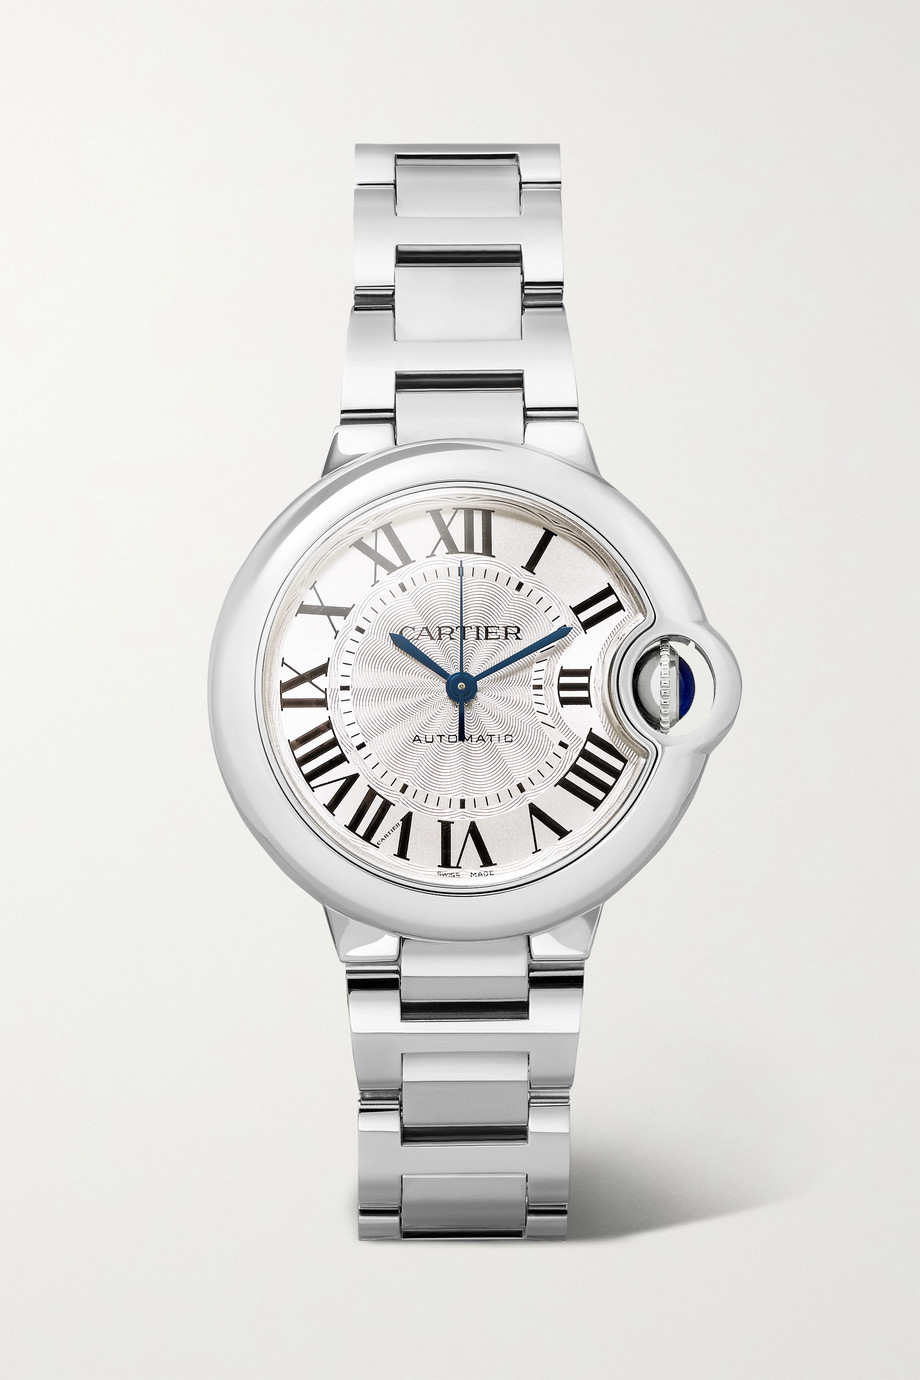 CARTIER Ballon Bleu de Cartier 33mm stainless steel watch